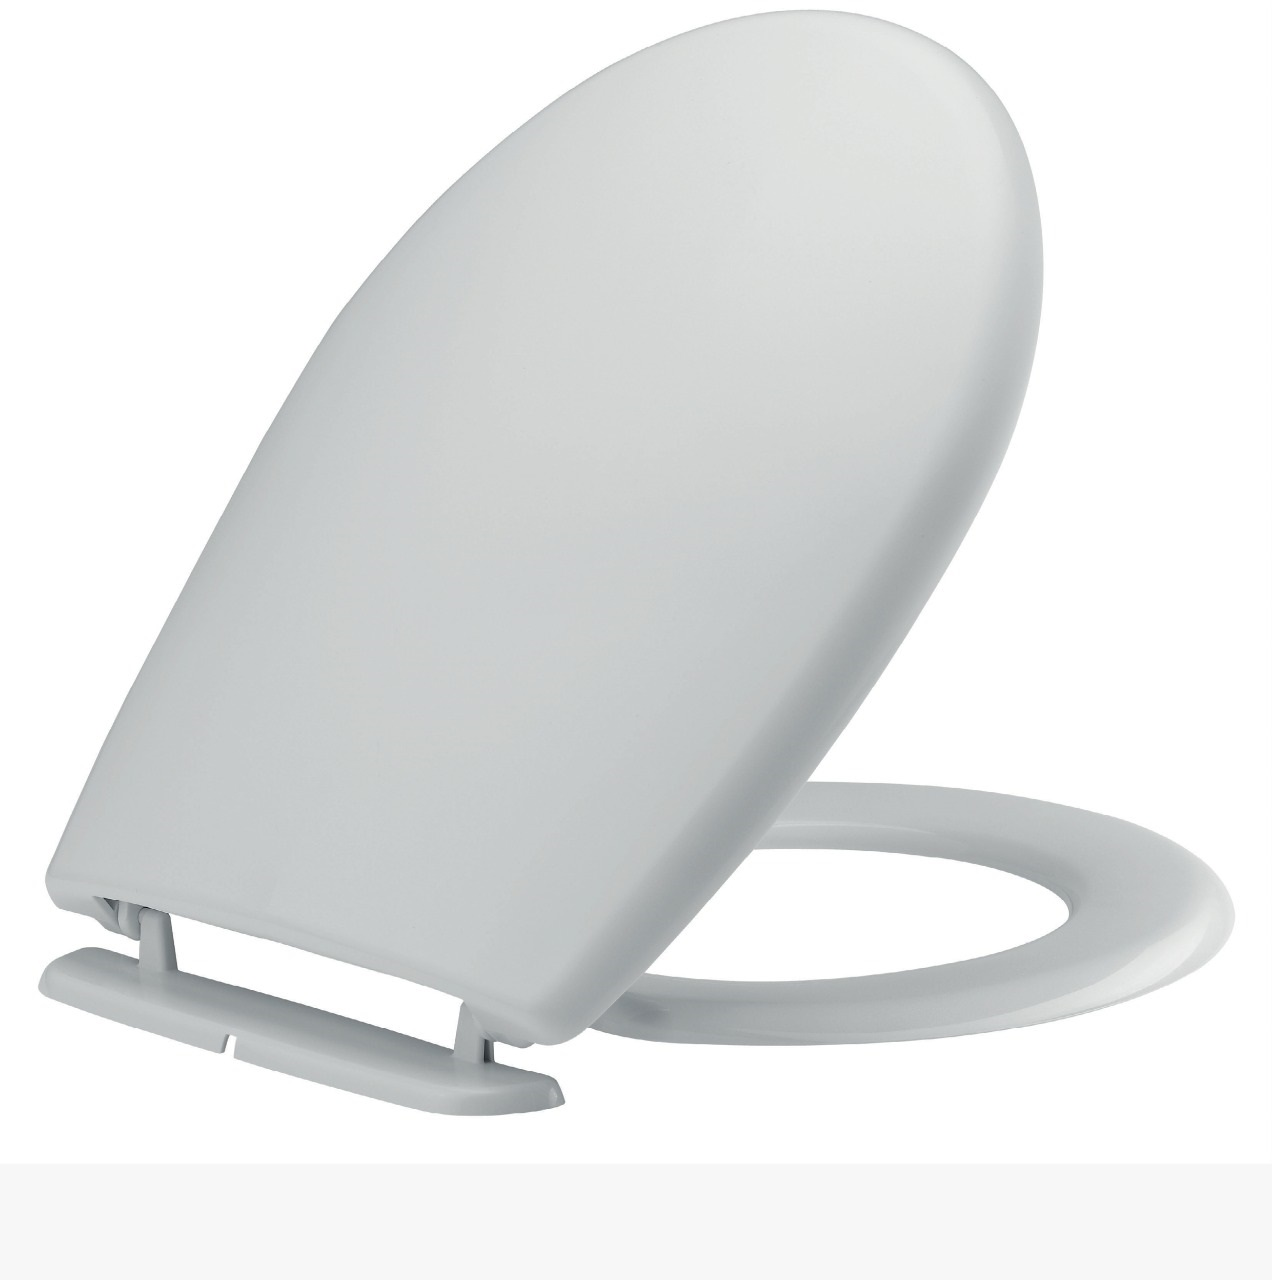 Thermoplastic toilet seat bge smart thermostat